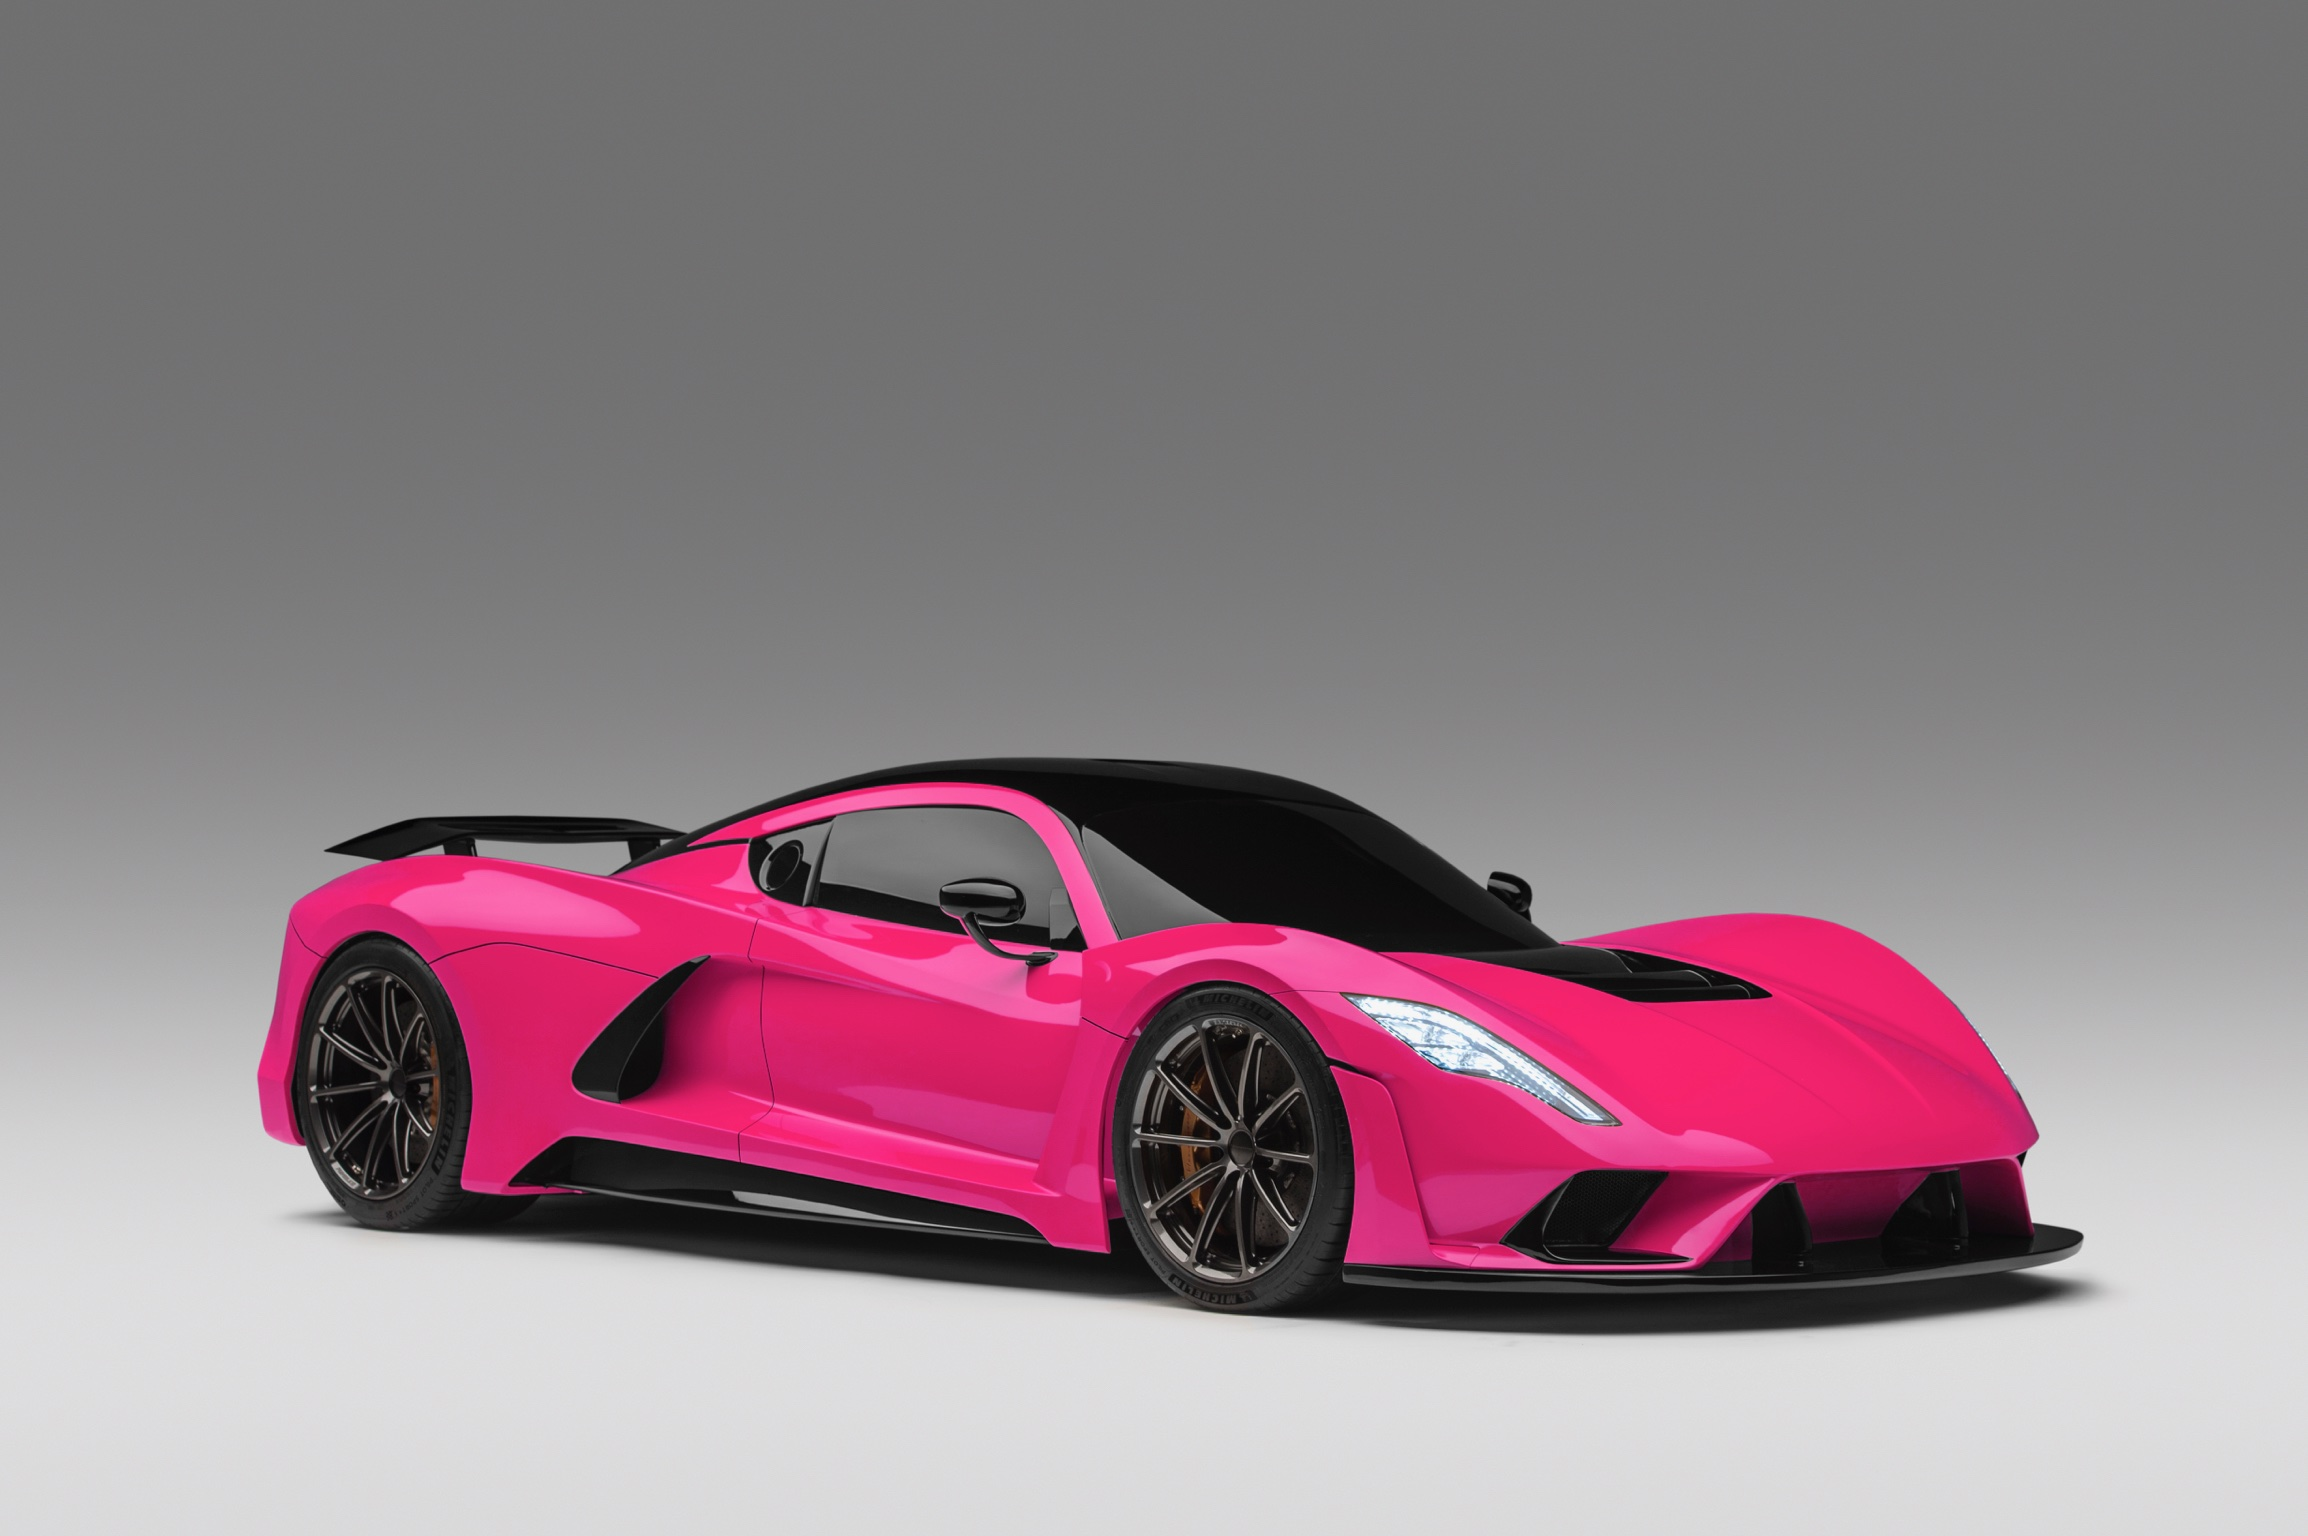 Hennessey Venom F5 in Hot Pink